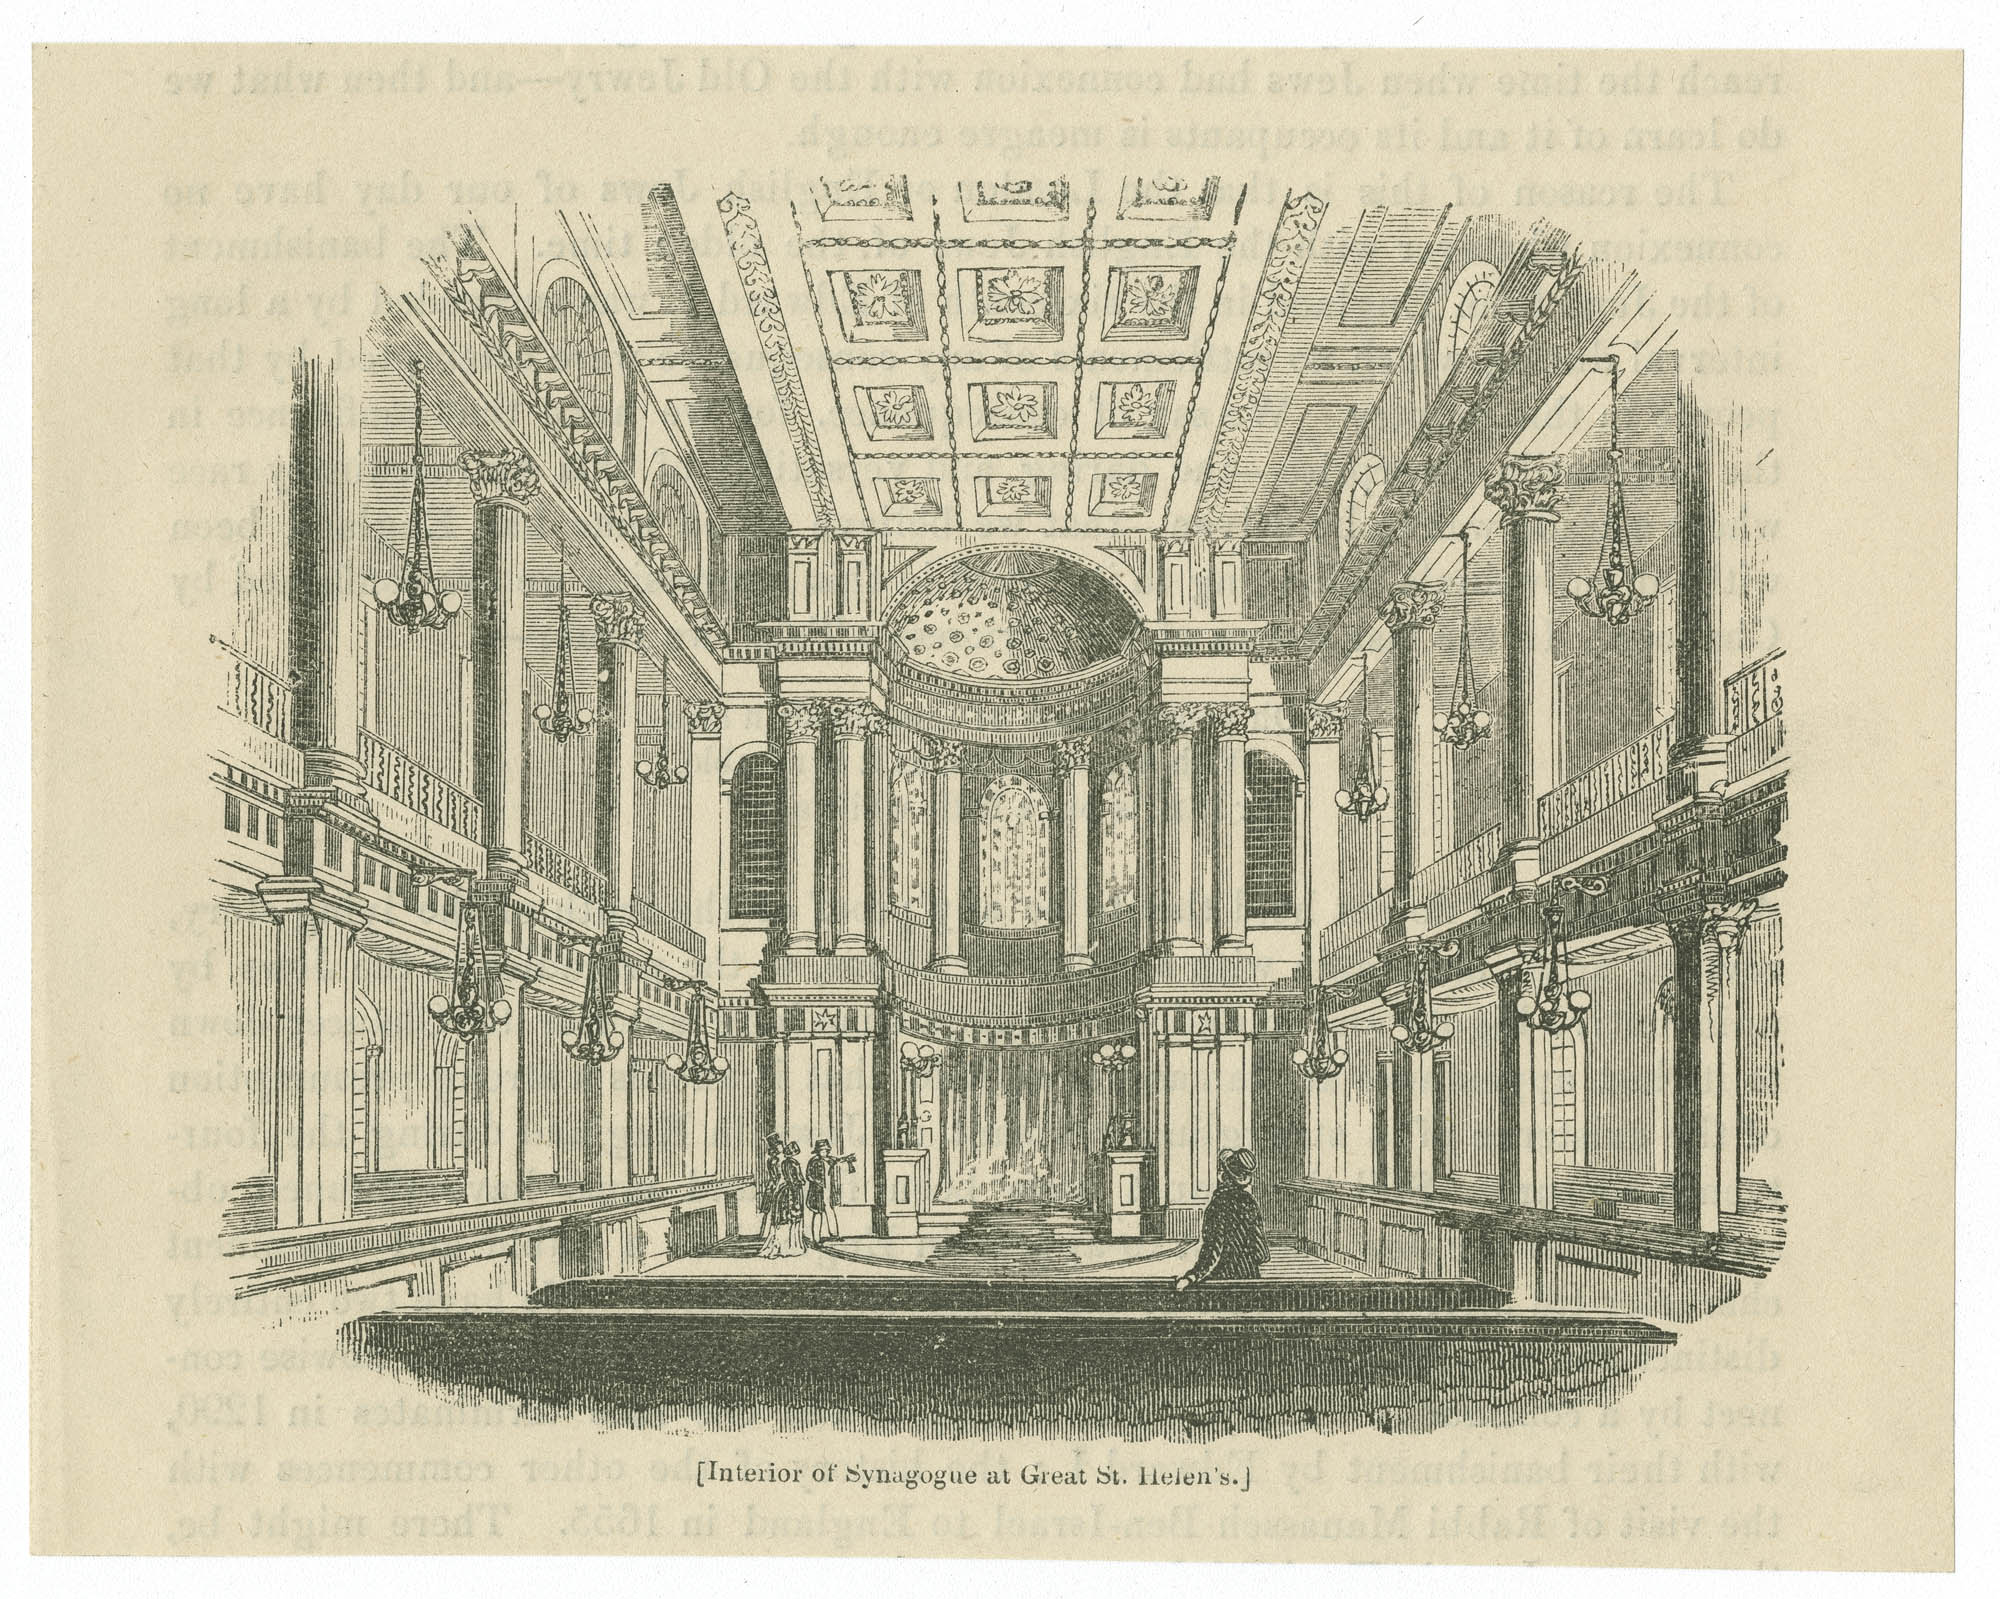 Interior of Synagogue at Great St. Helen's